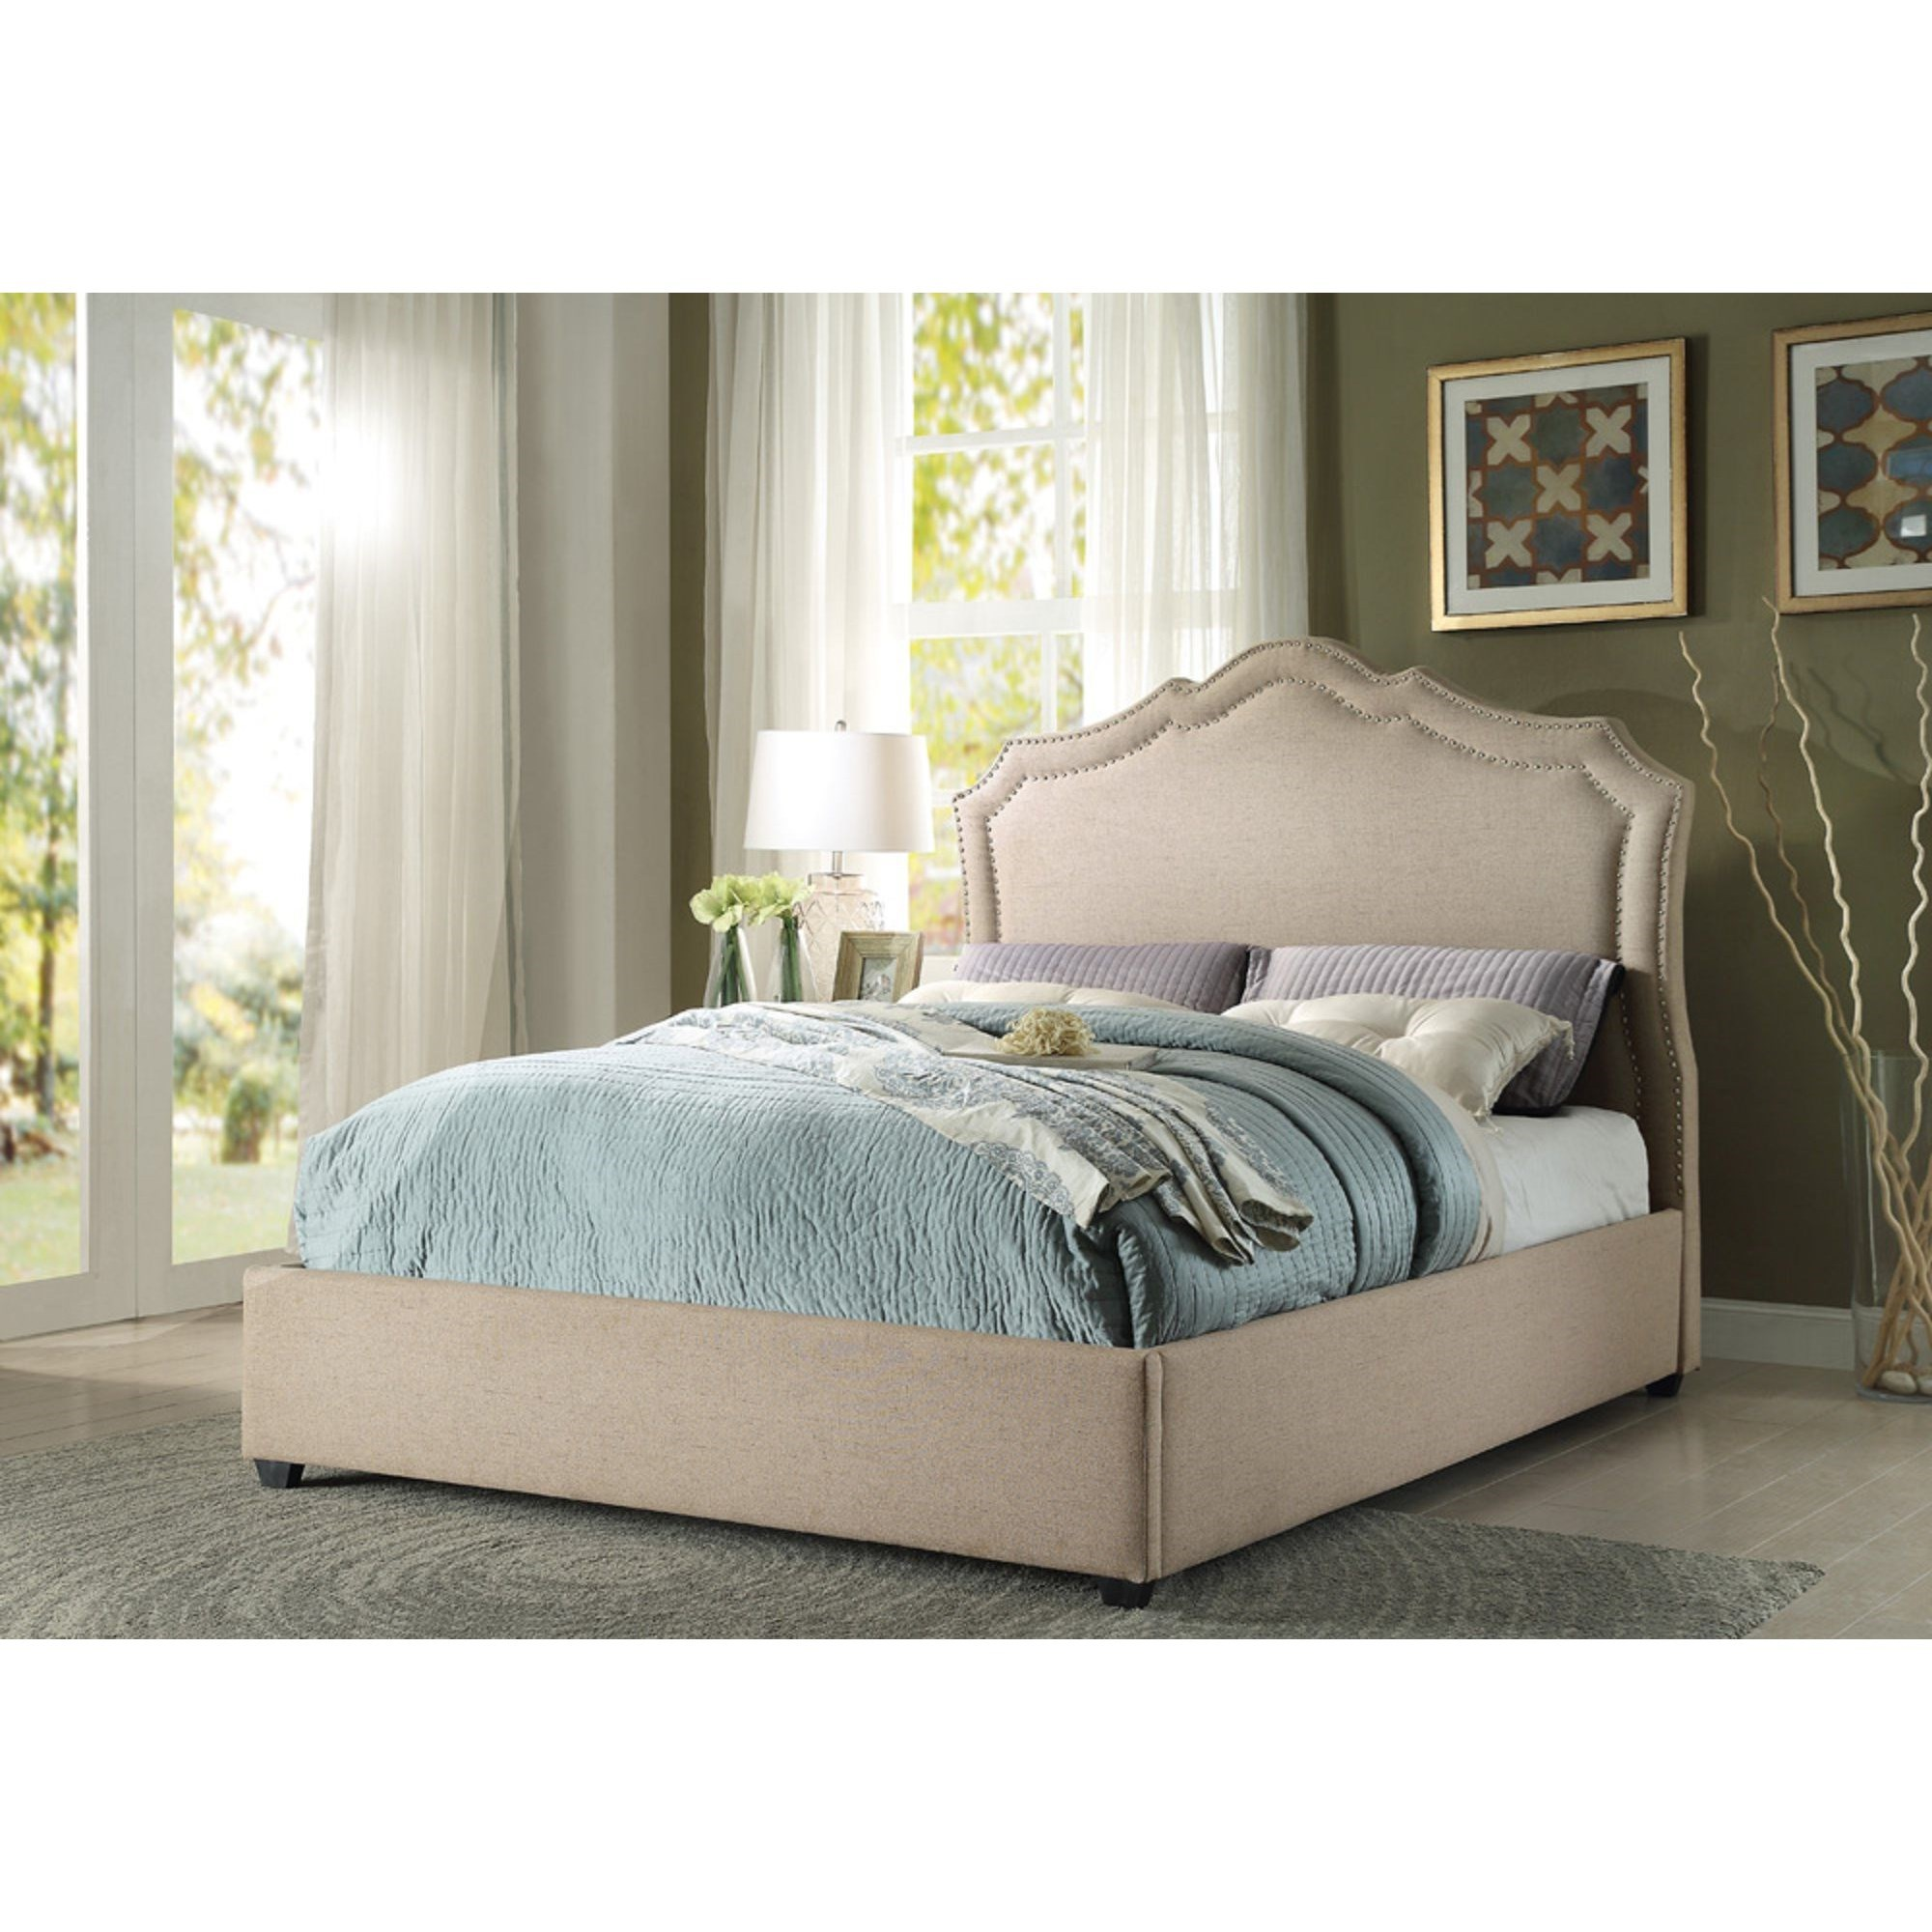 value city headboards homelegance delphine transitional king platform bed with 13709